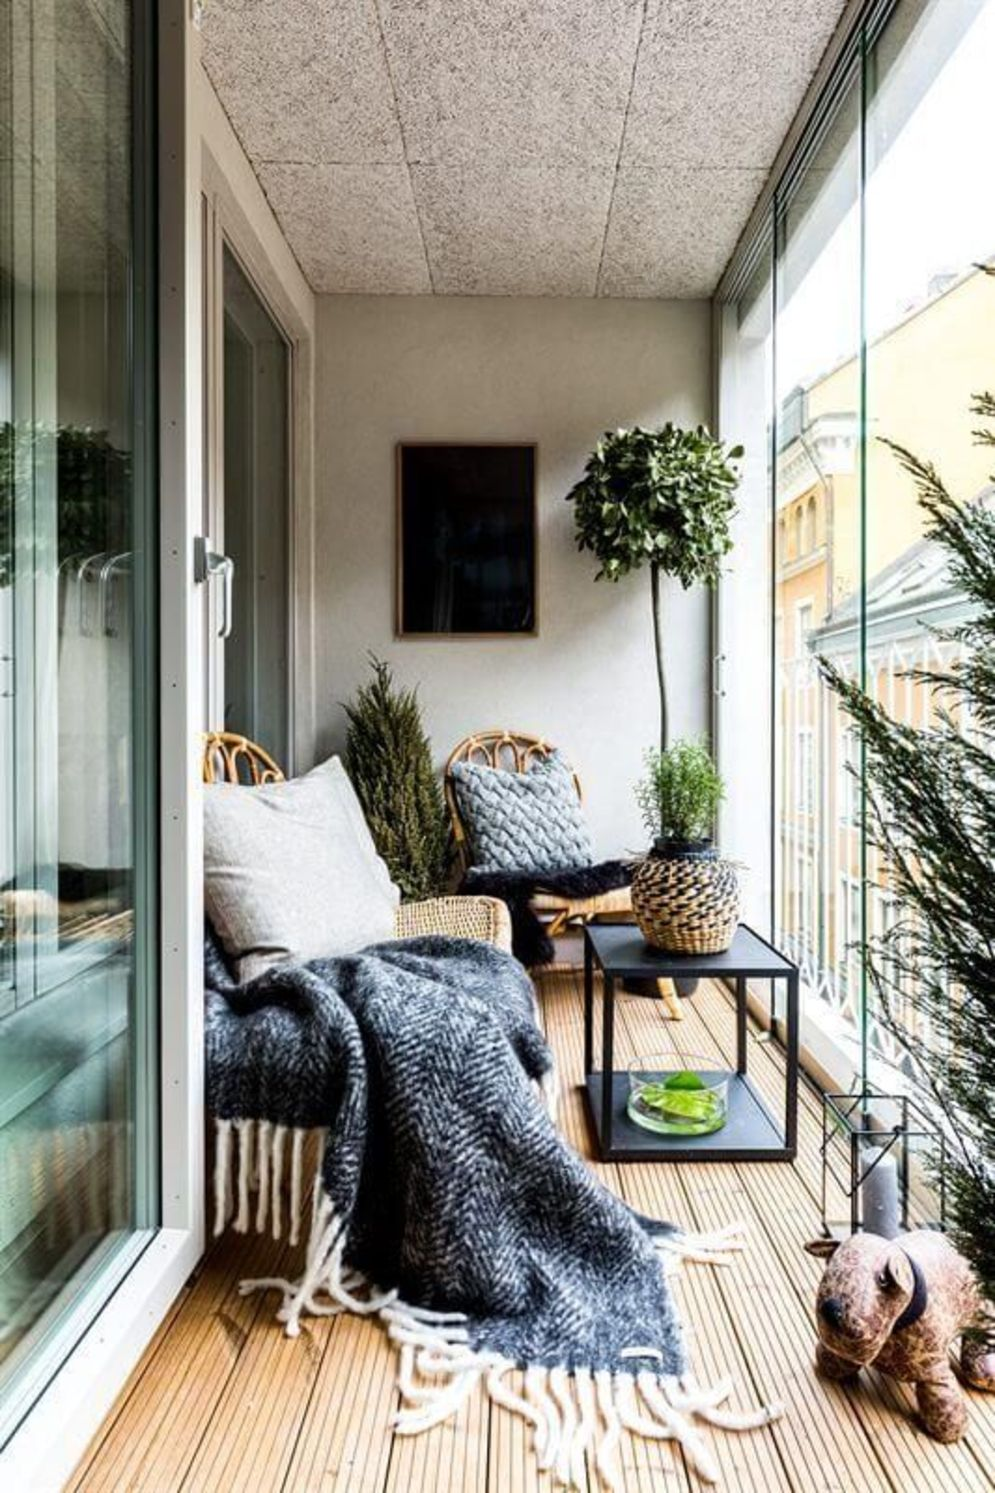 Clever apartment balcony conversion maximizing small space into functional living area Image 24